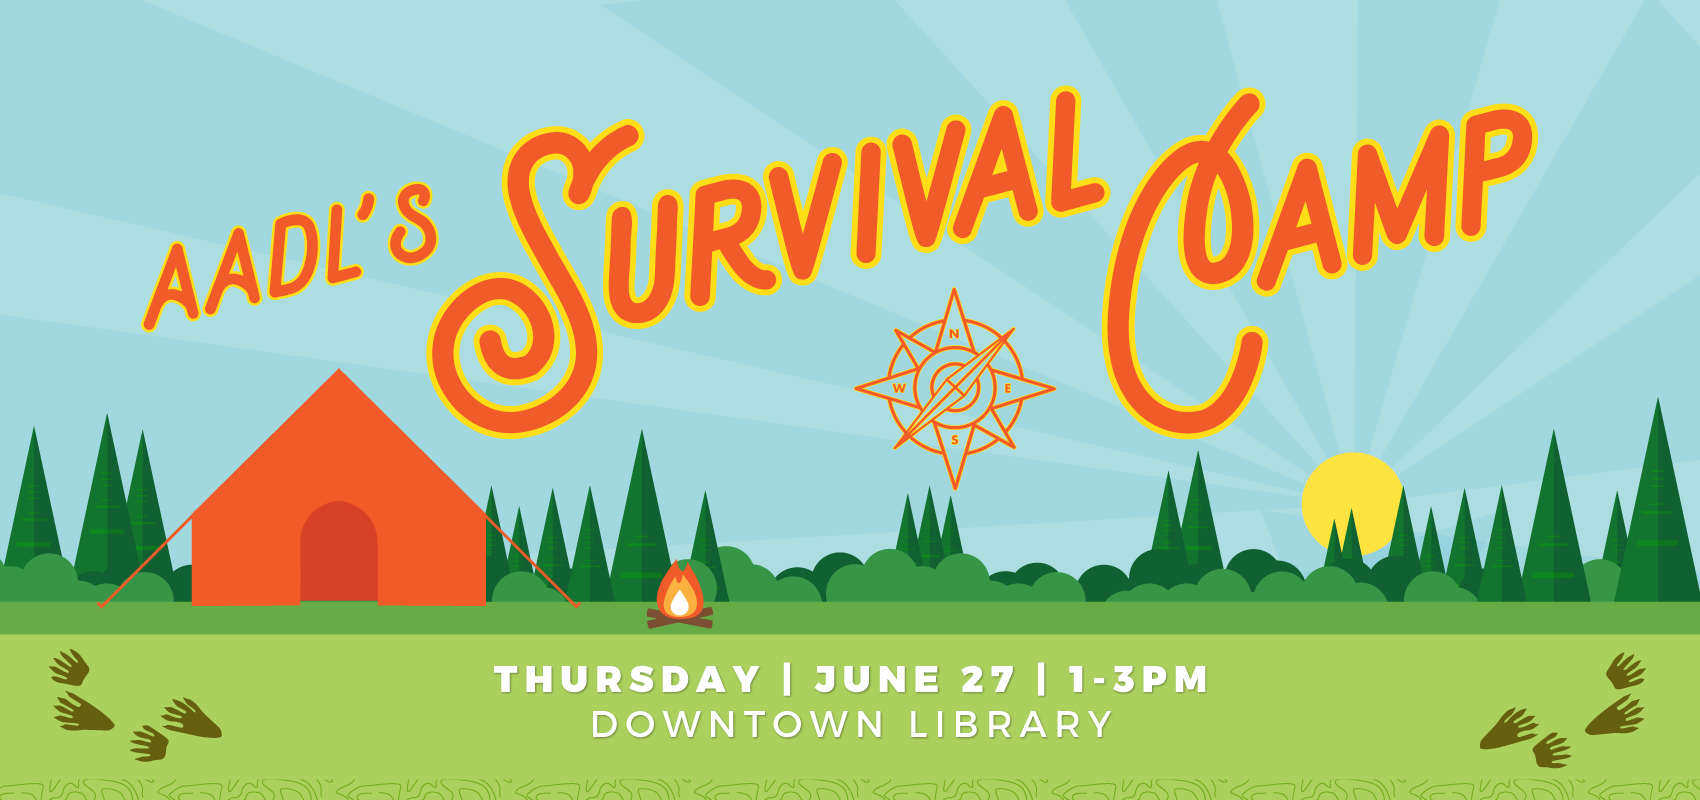 Survival Camp - Thursday June 27. .